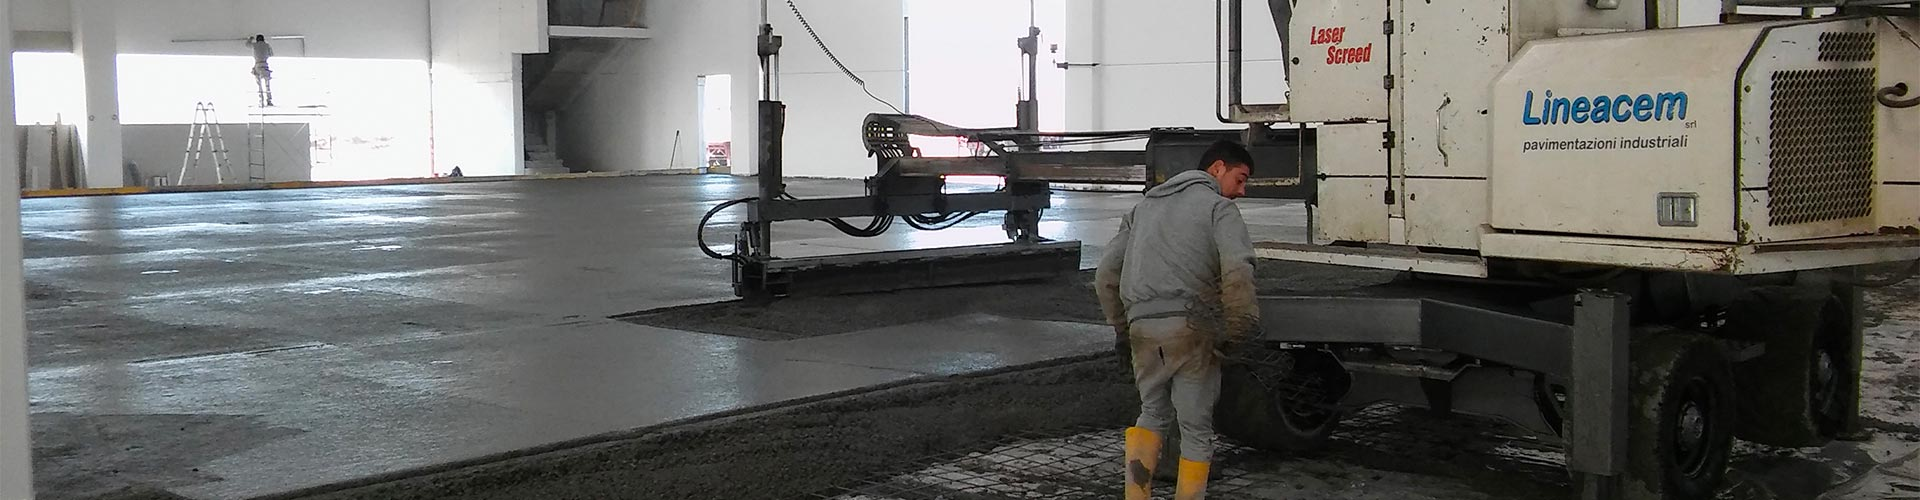 laser screed lineacem